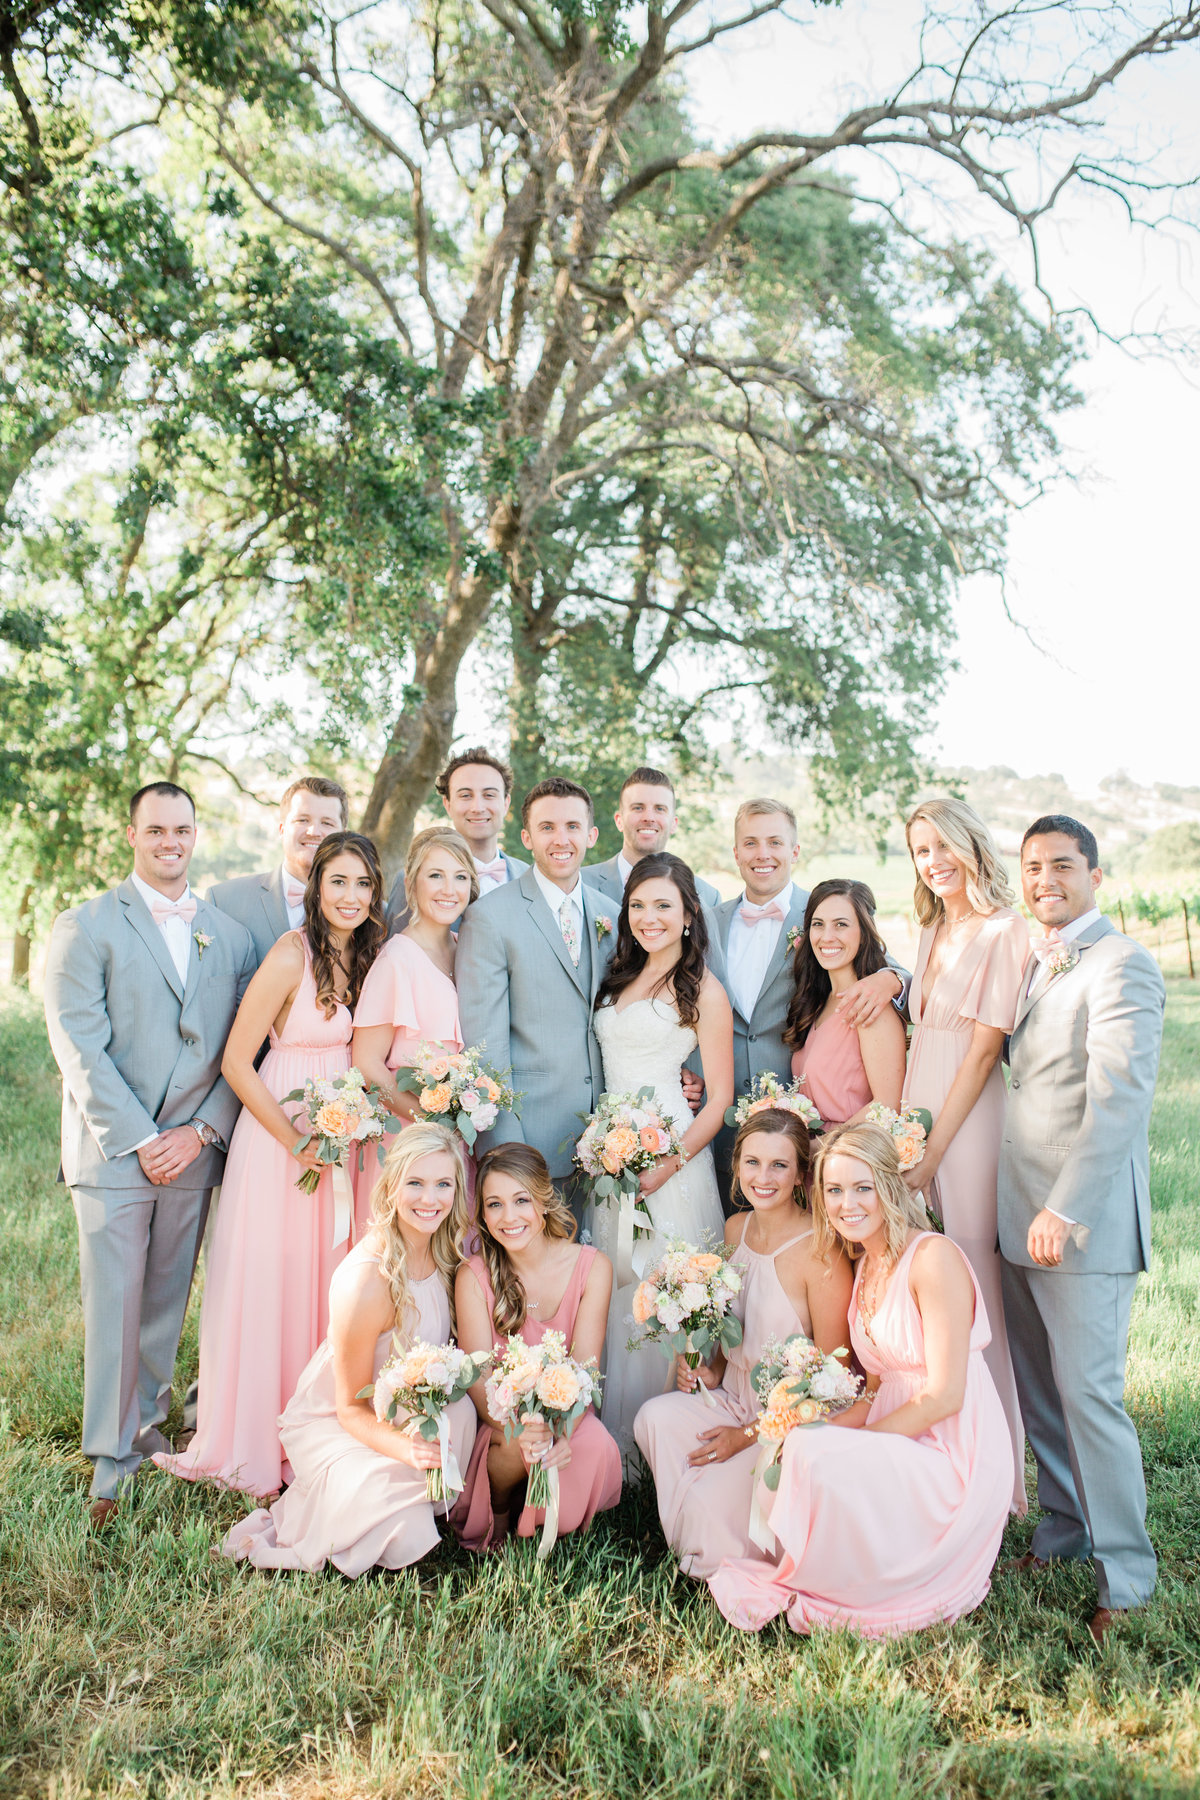 Carissa and Tyler Sneak Peek | California Wedding Photographer | Katie Schoepflin Photography 2018.13